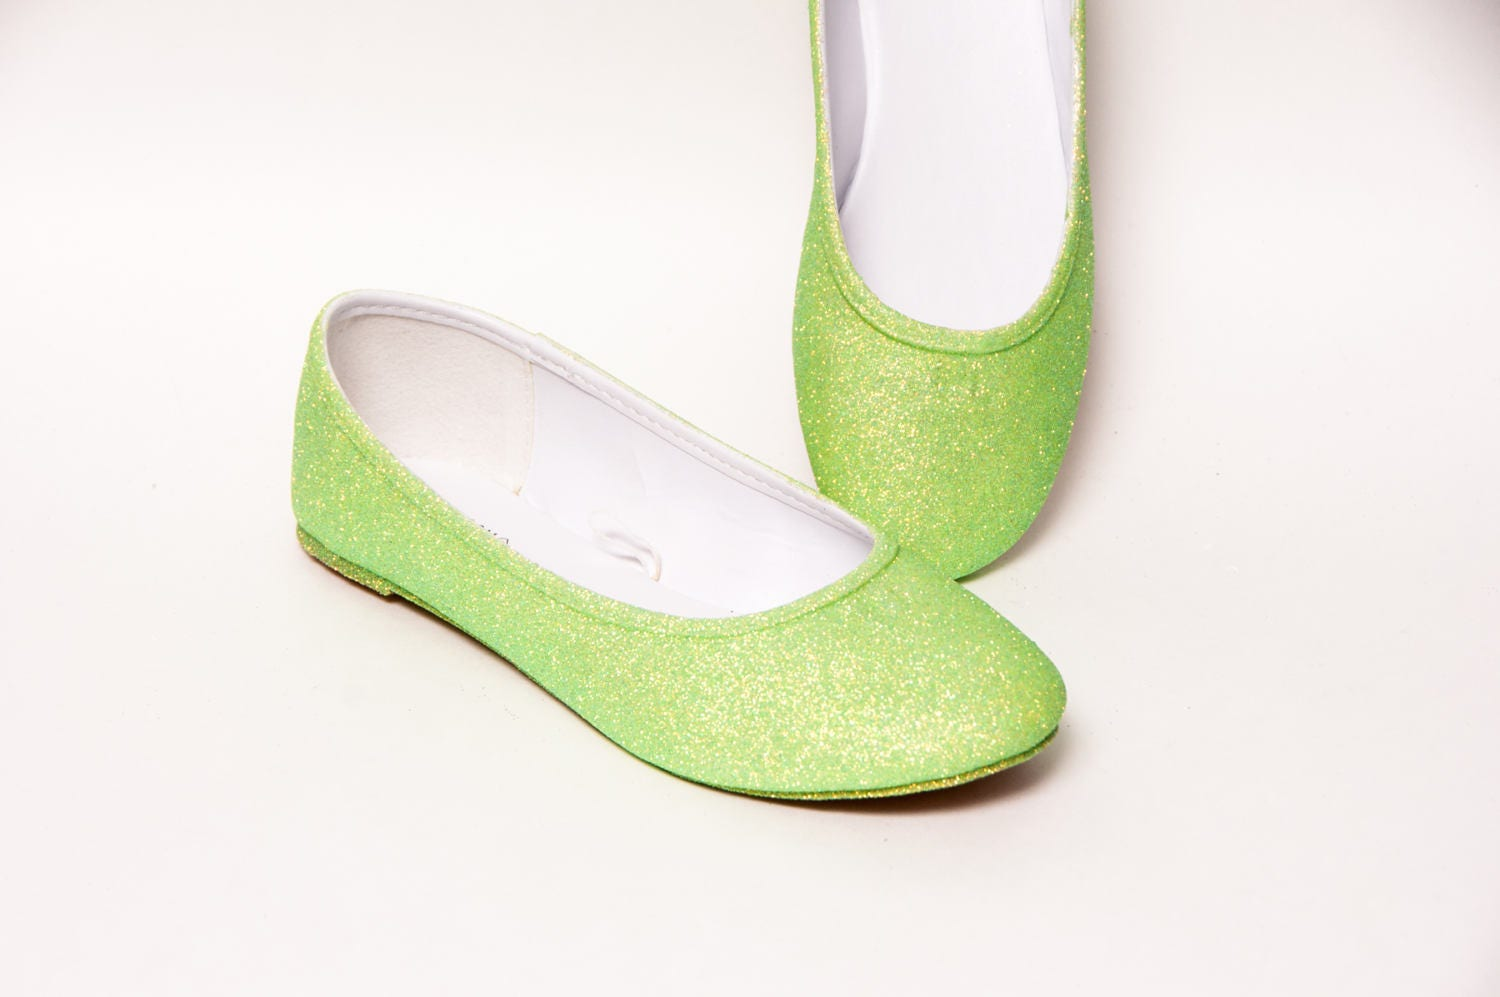 Women's Candy Canes Ballet Slipper - Green/Red. Sold by Sears. $ Women's Christmas Lights Ballet Slipper - Red. Sold by Sears. $ Women's Reindeer Ballet Slipper - Brown. Sold by Sears. $ $ Pink K Women's Marla Ballet Slipper - Blue. Sold by Kmart. $ $ Girl's Musical Ballet Slippers Jewelry Box.